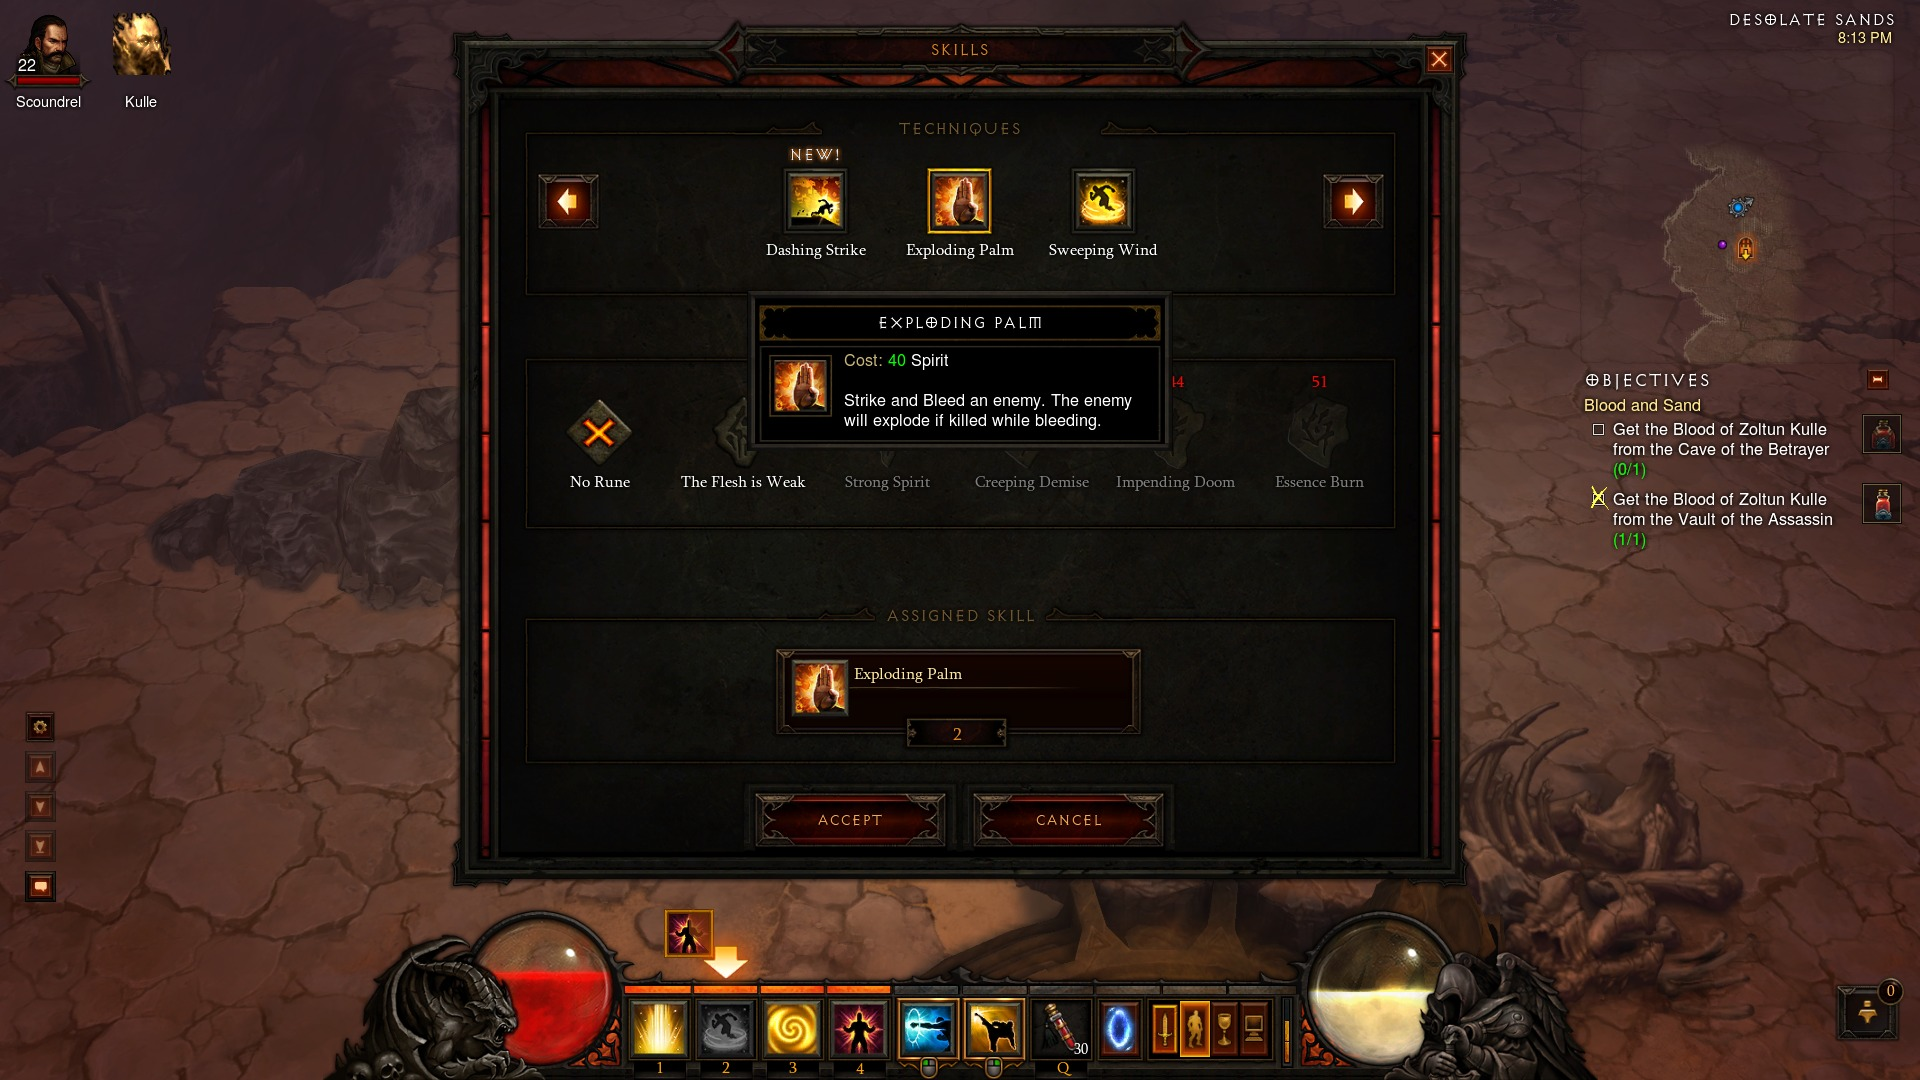 an analysis of the game diablo 3 It's time to again experience the hell that launched a video game genre diablo iii's patch 243 is now live, and it brings a host of changes and content that.